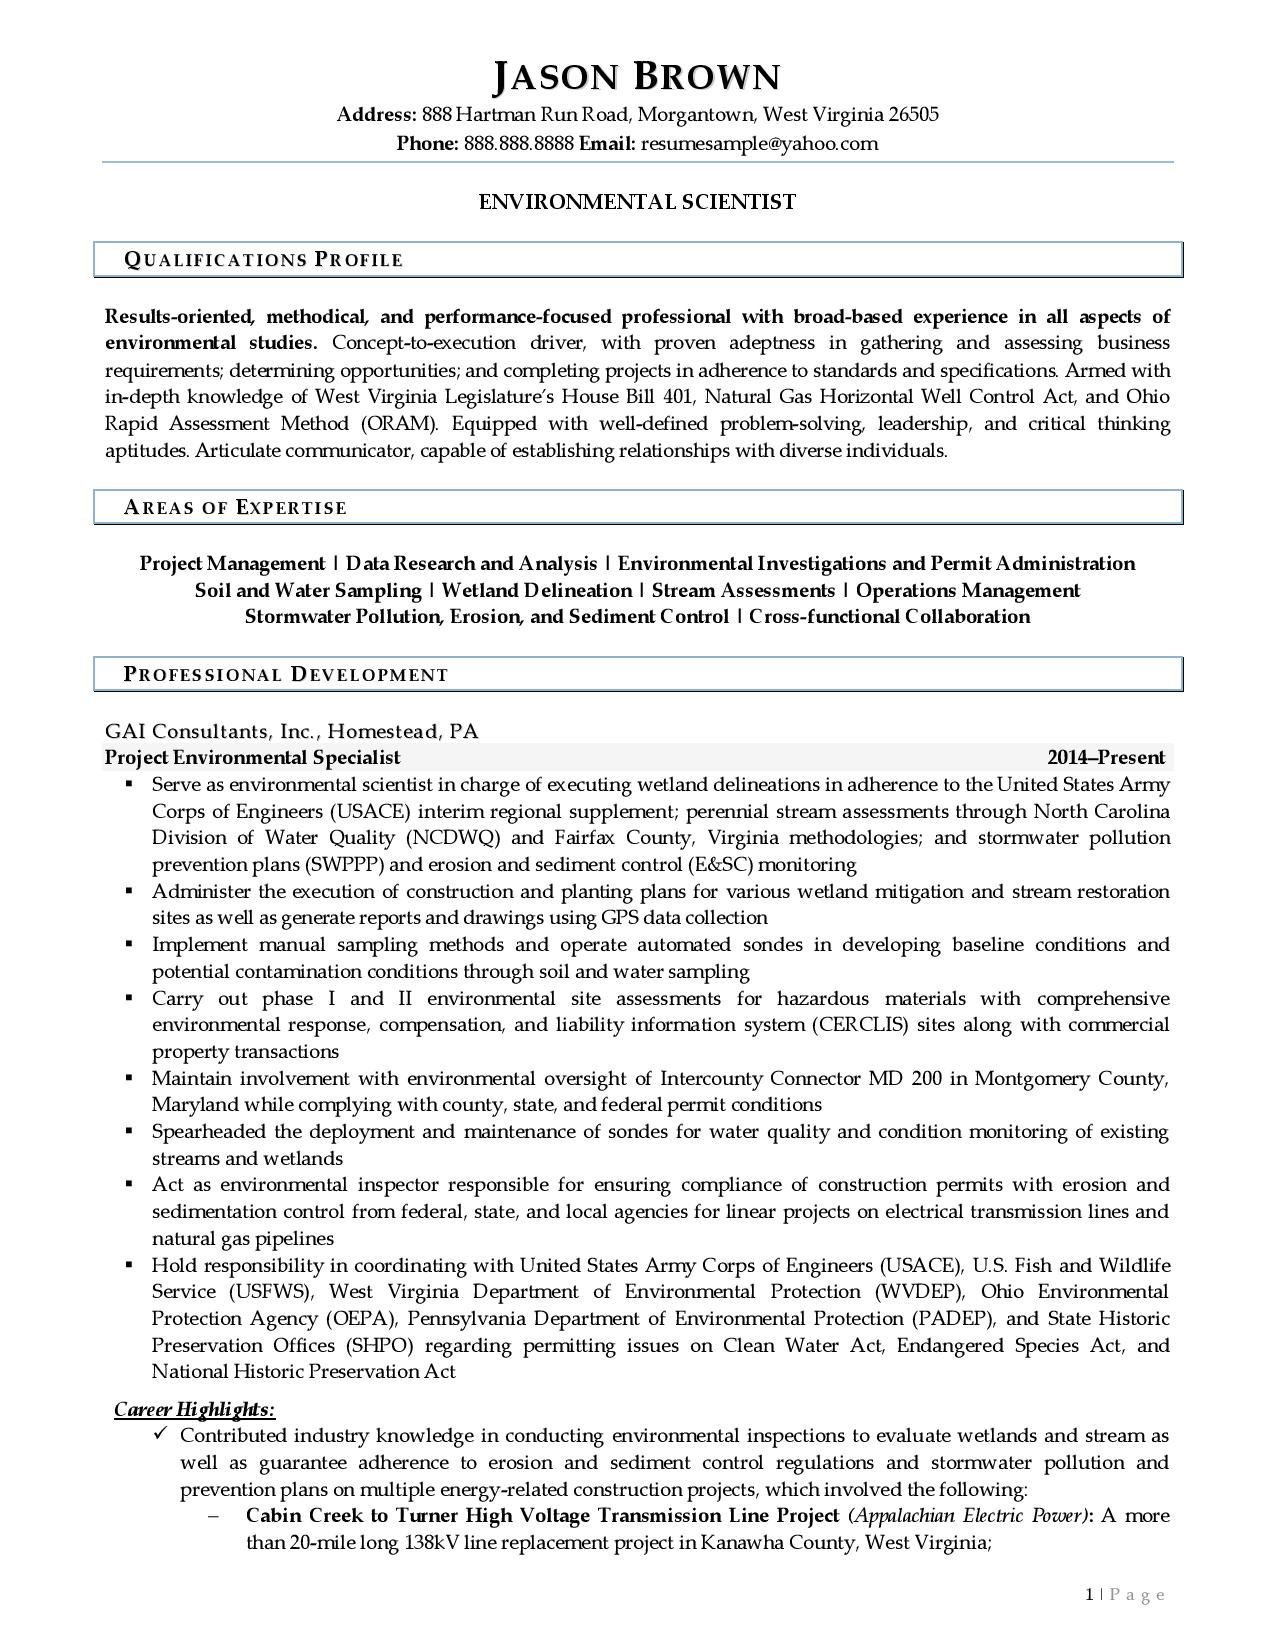 Page 1 of a sample from our environmental scientist resume examples